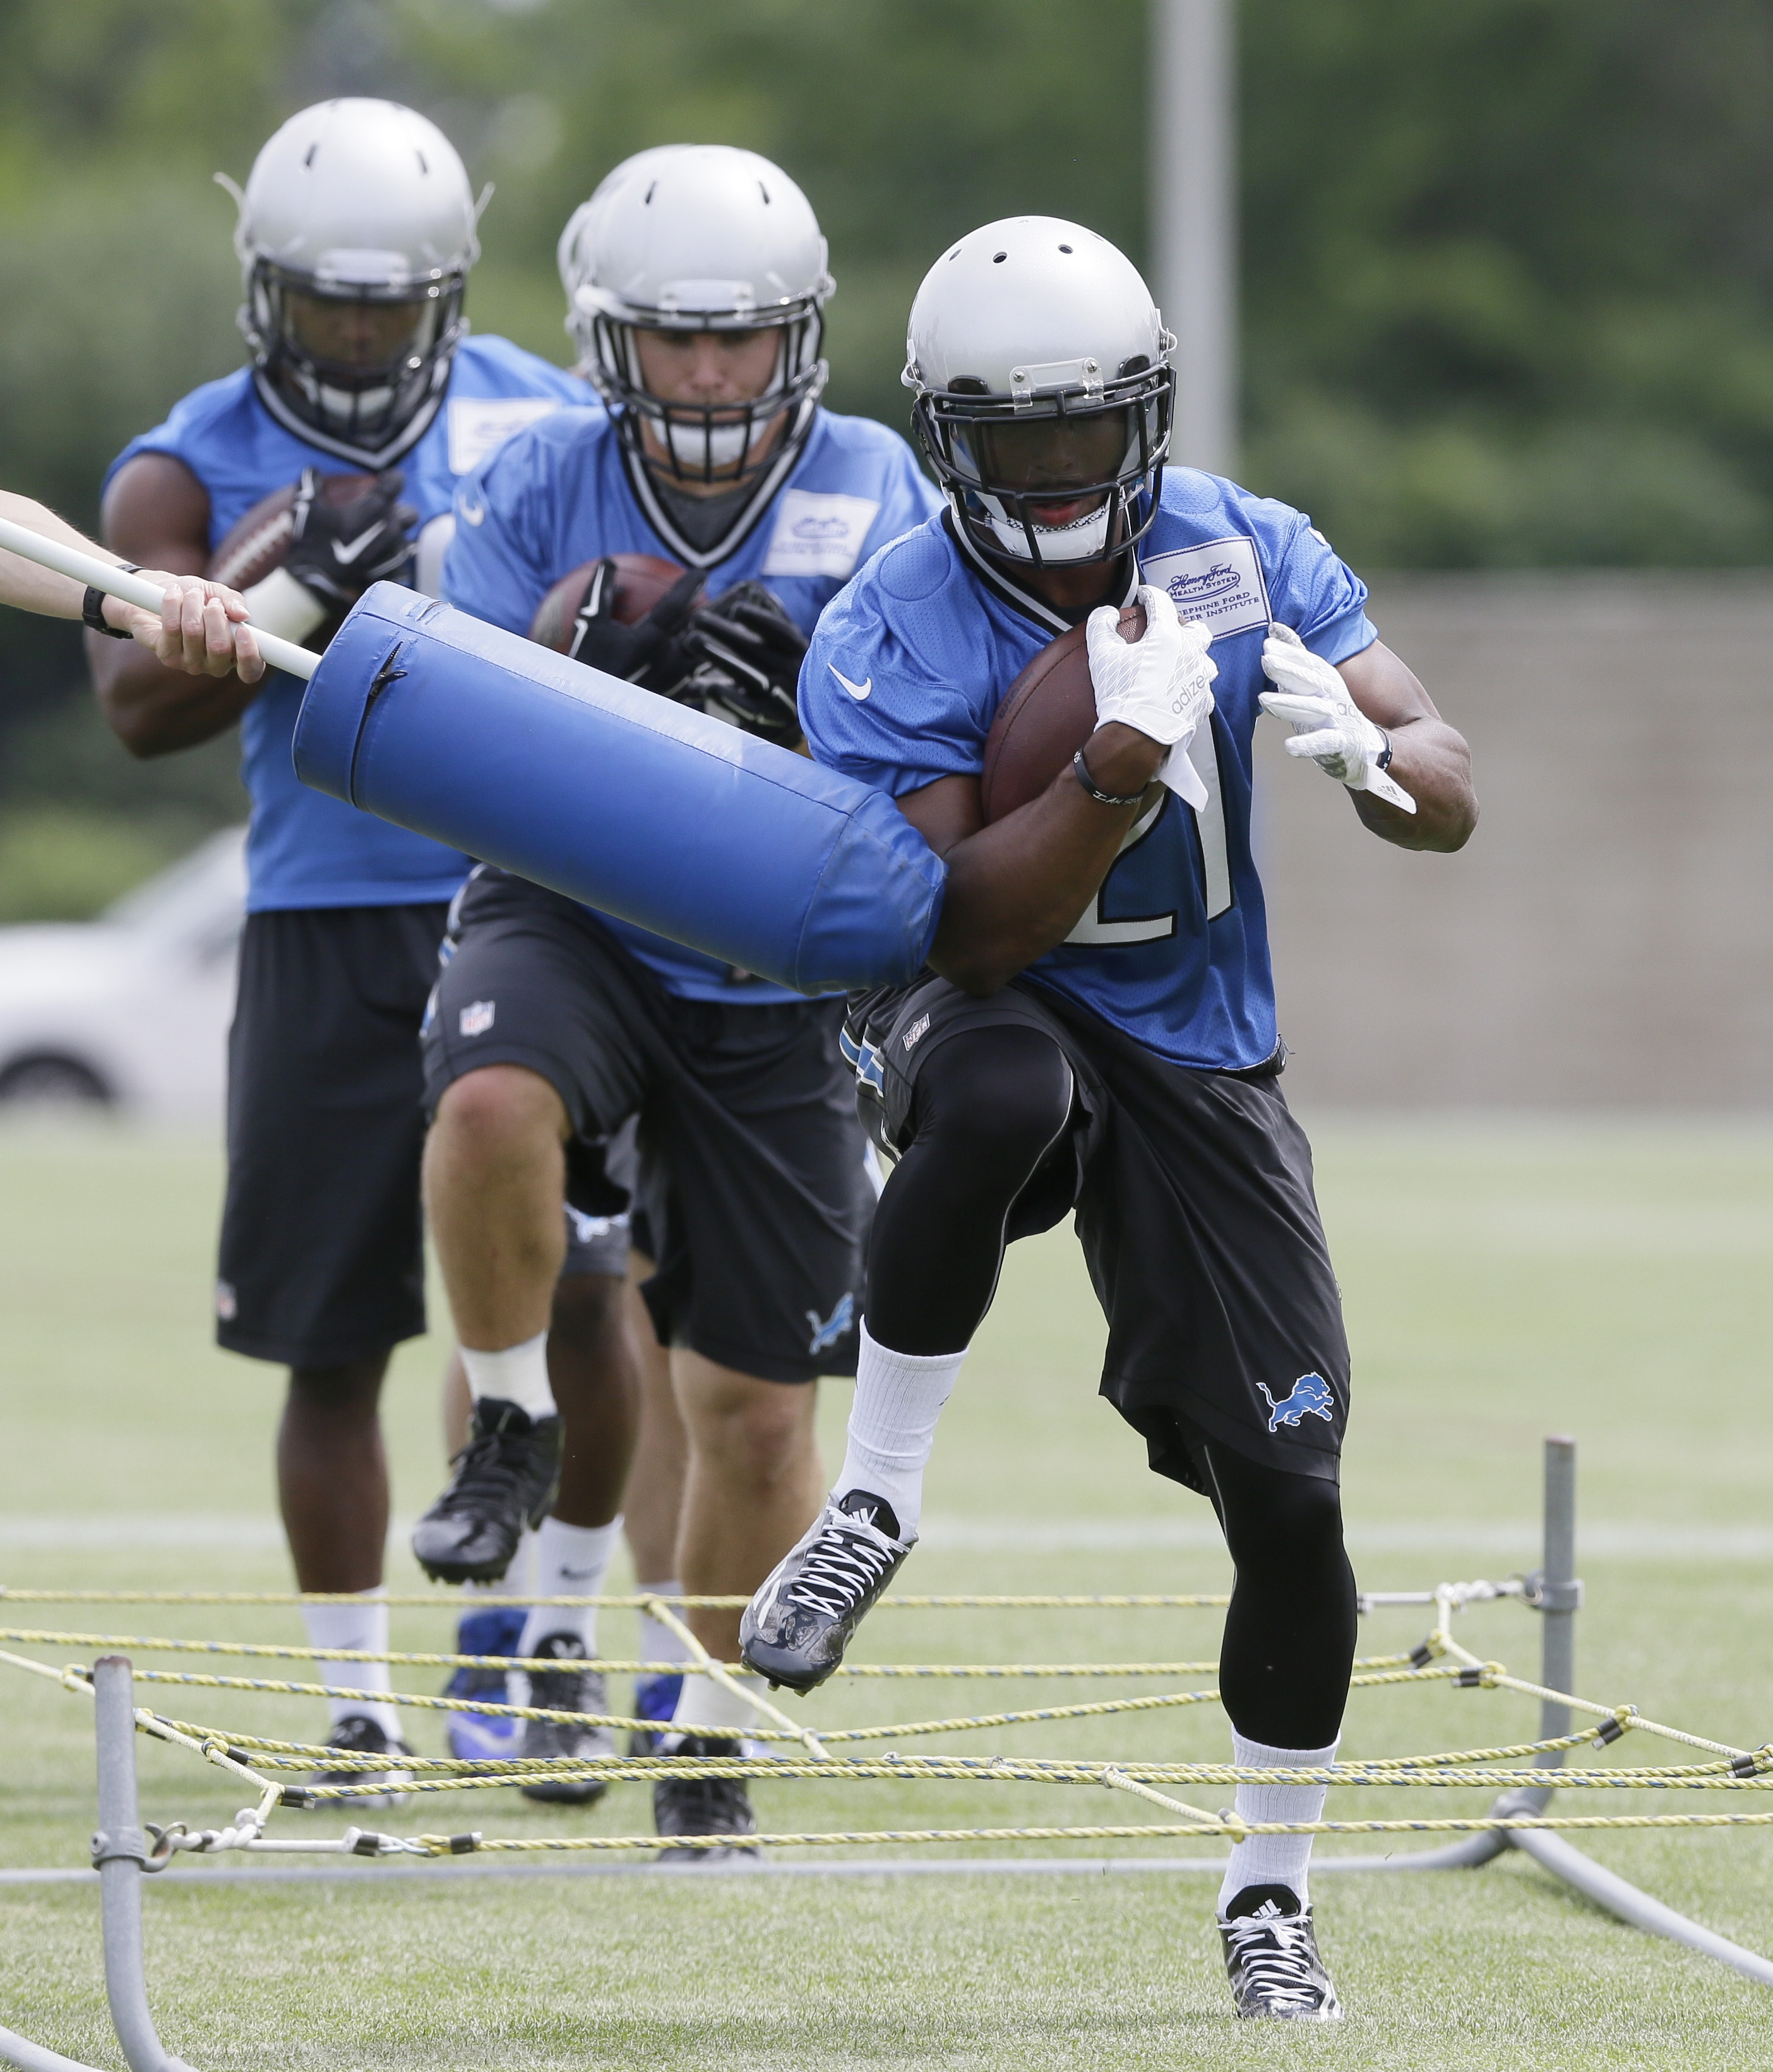 Detroit Lions running back Ameer Abdullah runs through a drill during NFL football minicamp, Wednesday, June 17, 2015, in Allen Park, Mich. (AP Photo/Carlos Osorio)